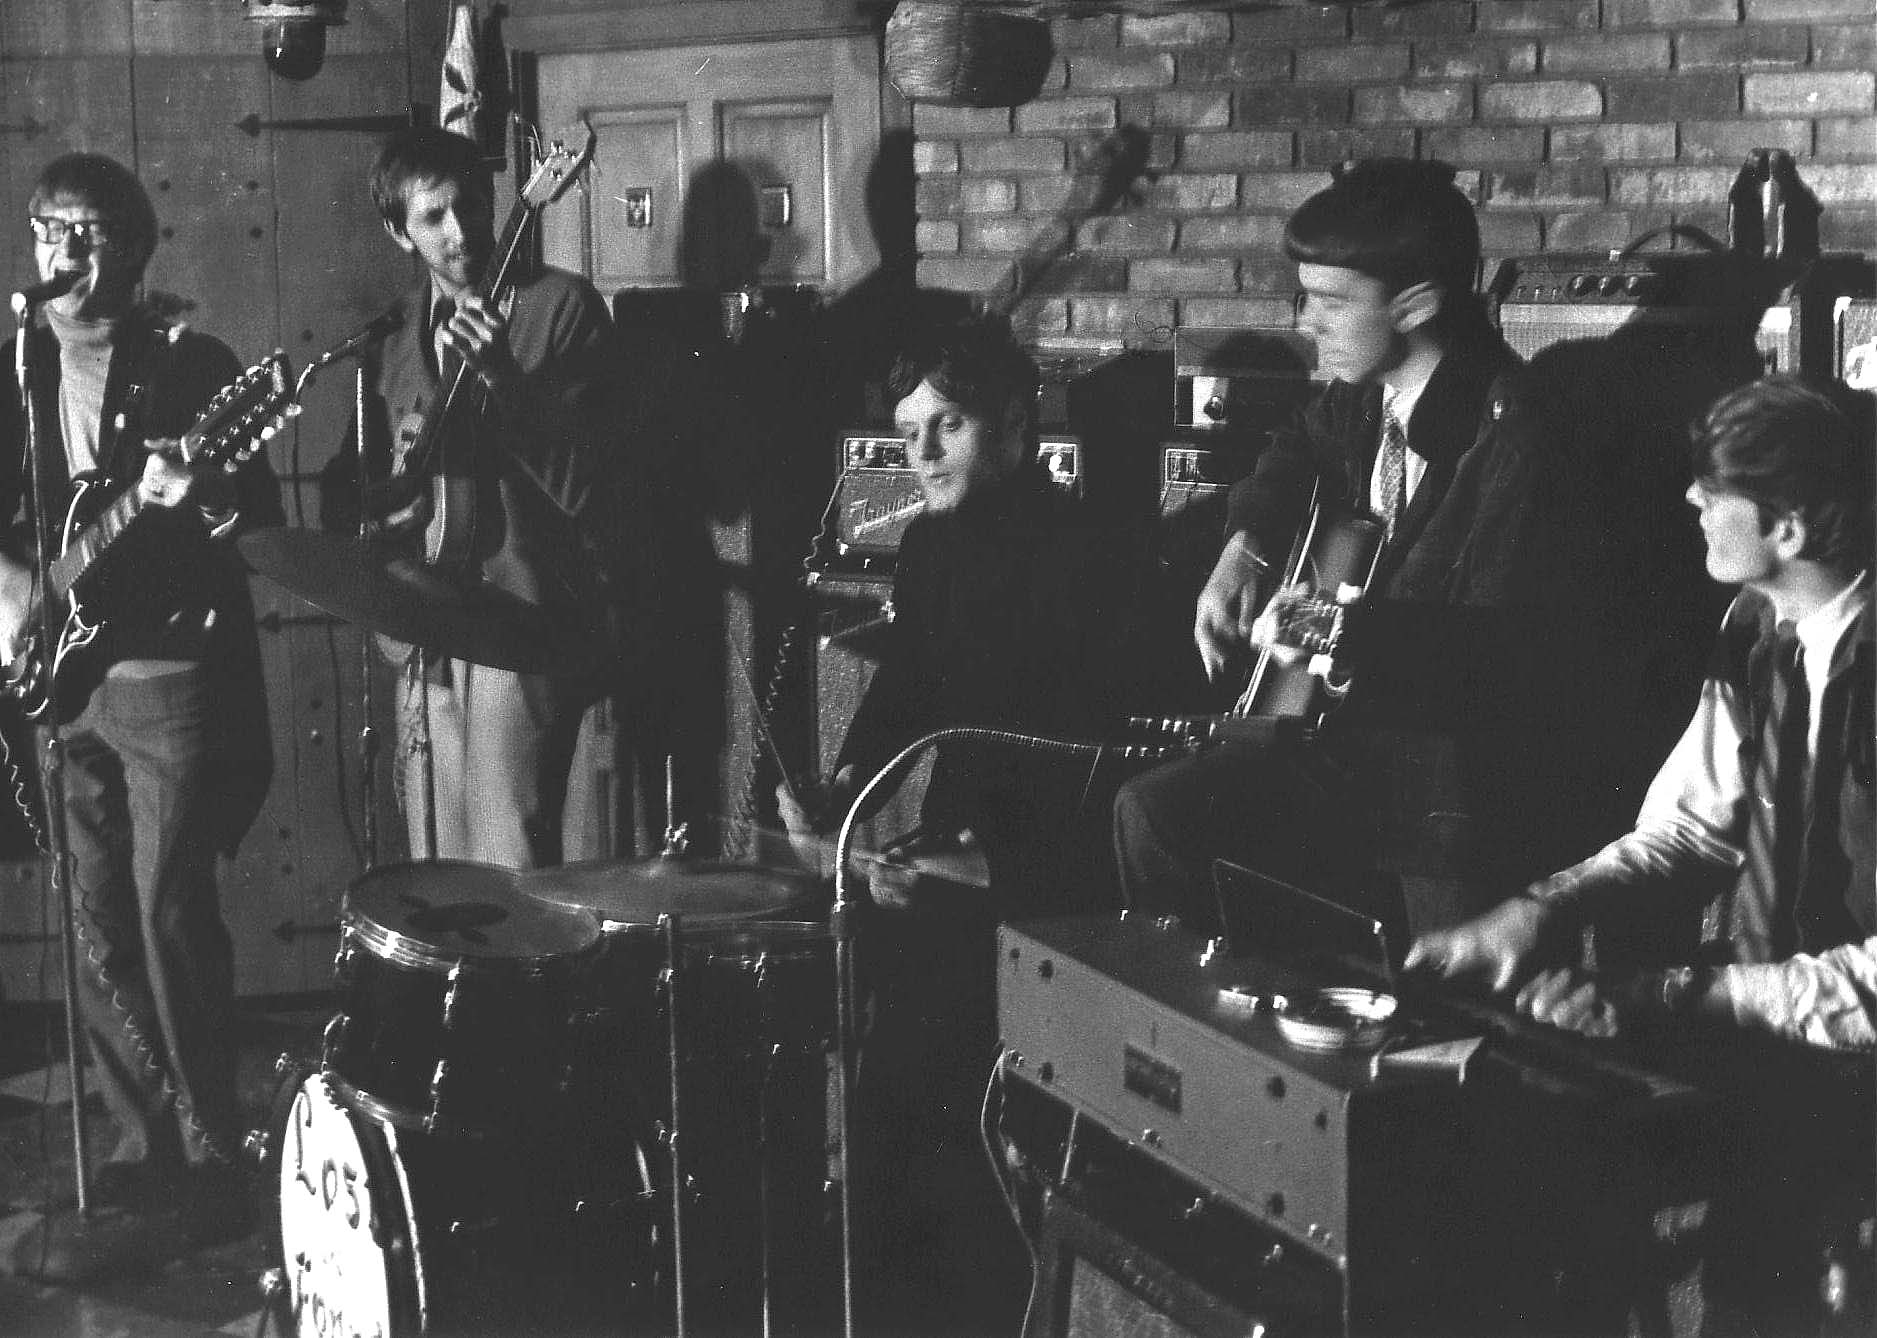 """Lost & Found circa 1967,practicing in Pierre   Fauteux's parent's basement - D'Arcy Draper said """"that's why we call ourselves """"Basement Boys"""" from those times"""". Left to right: Richard Brown,  Pierre Fauteux, Francois Jolicoeur,  D'Arcy Draper,  George Osborne."""